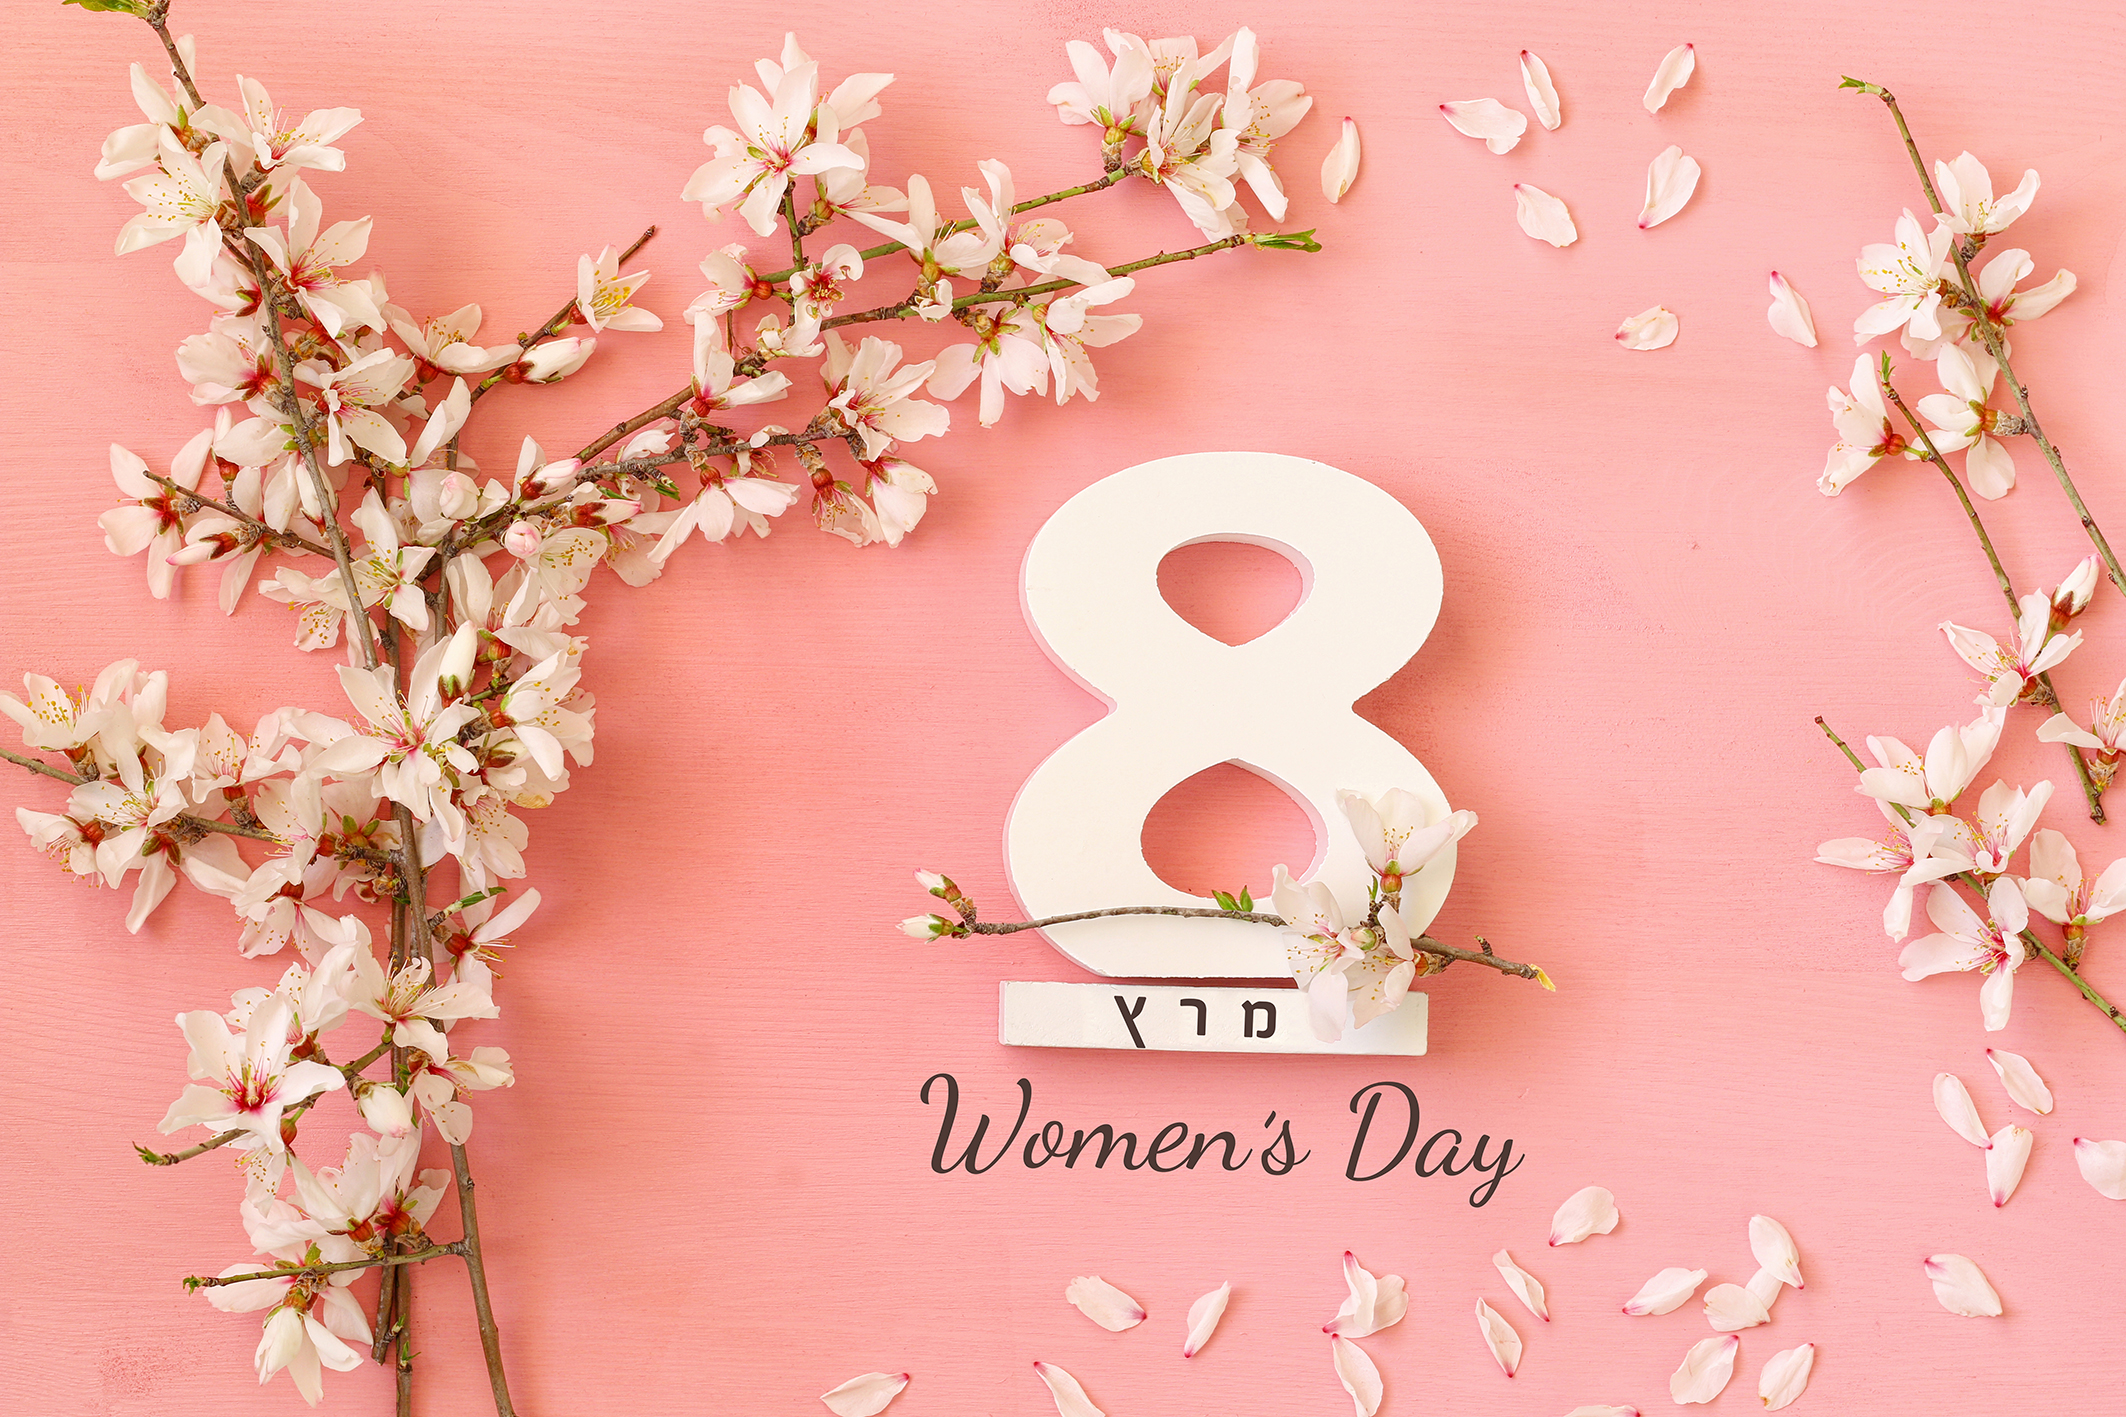 /Pulseem/ClientImages/5101//%5Cbewell/%5C71662090_woman_day3.jpg